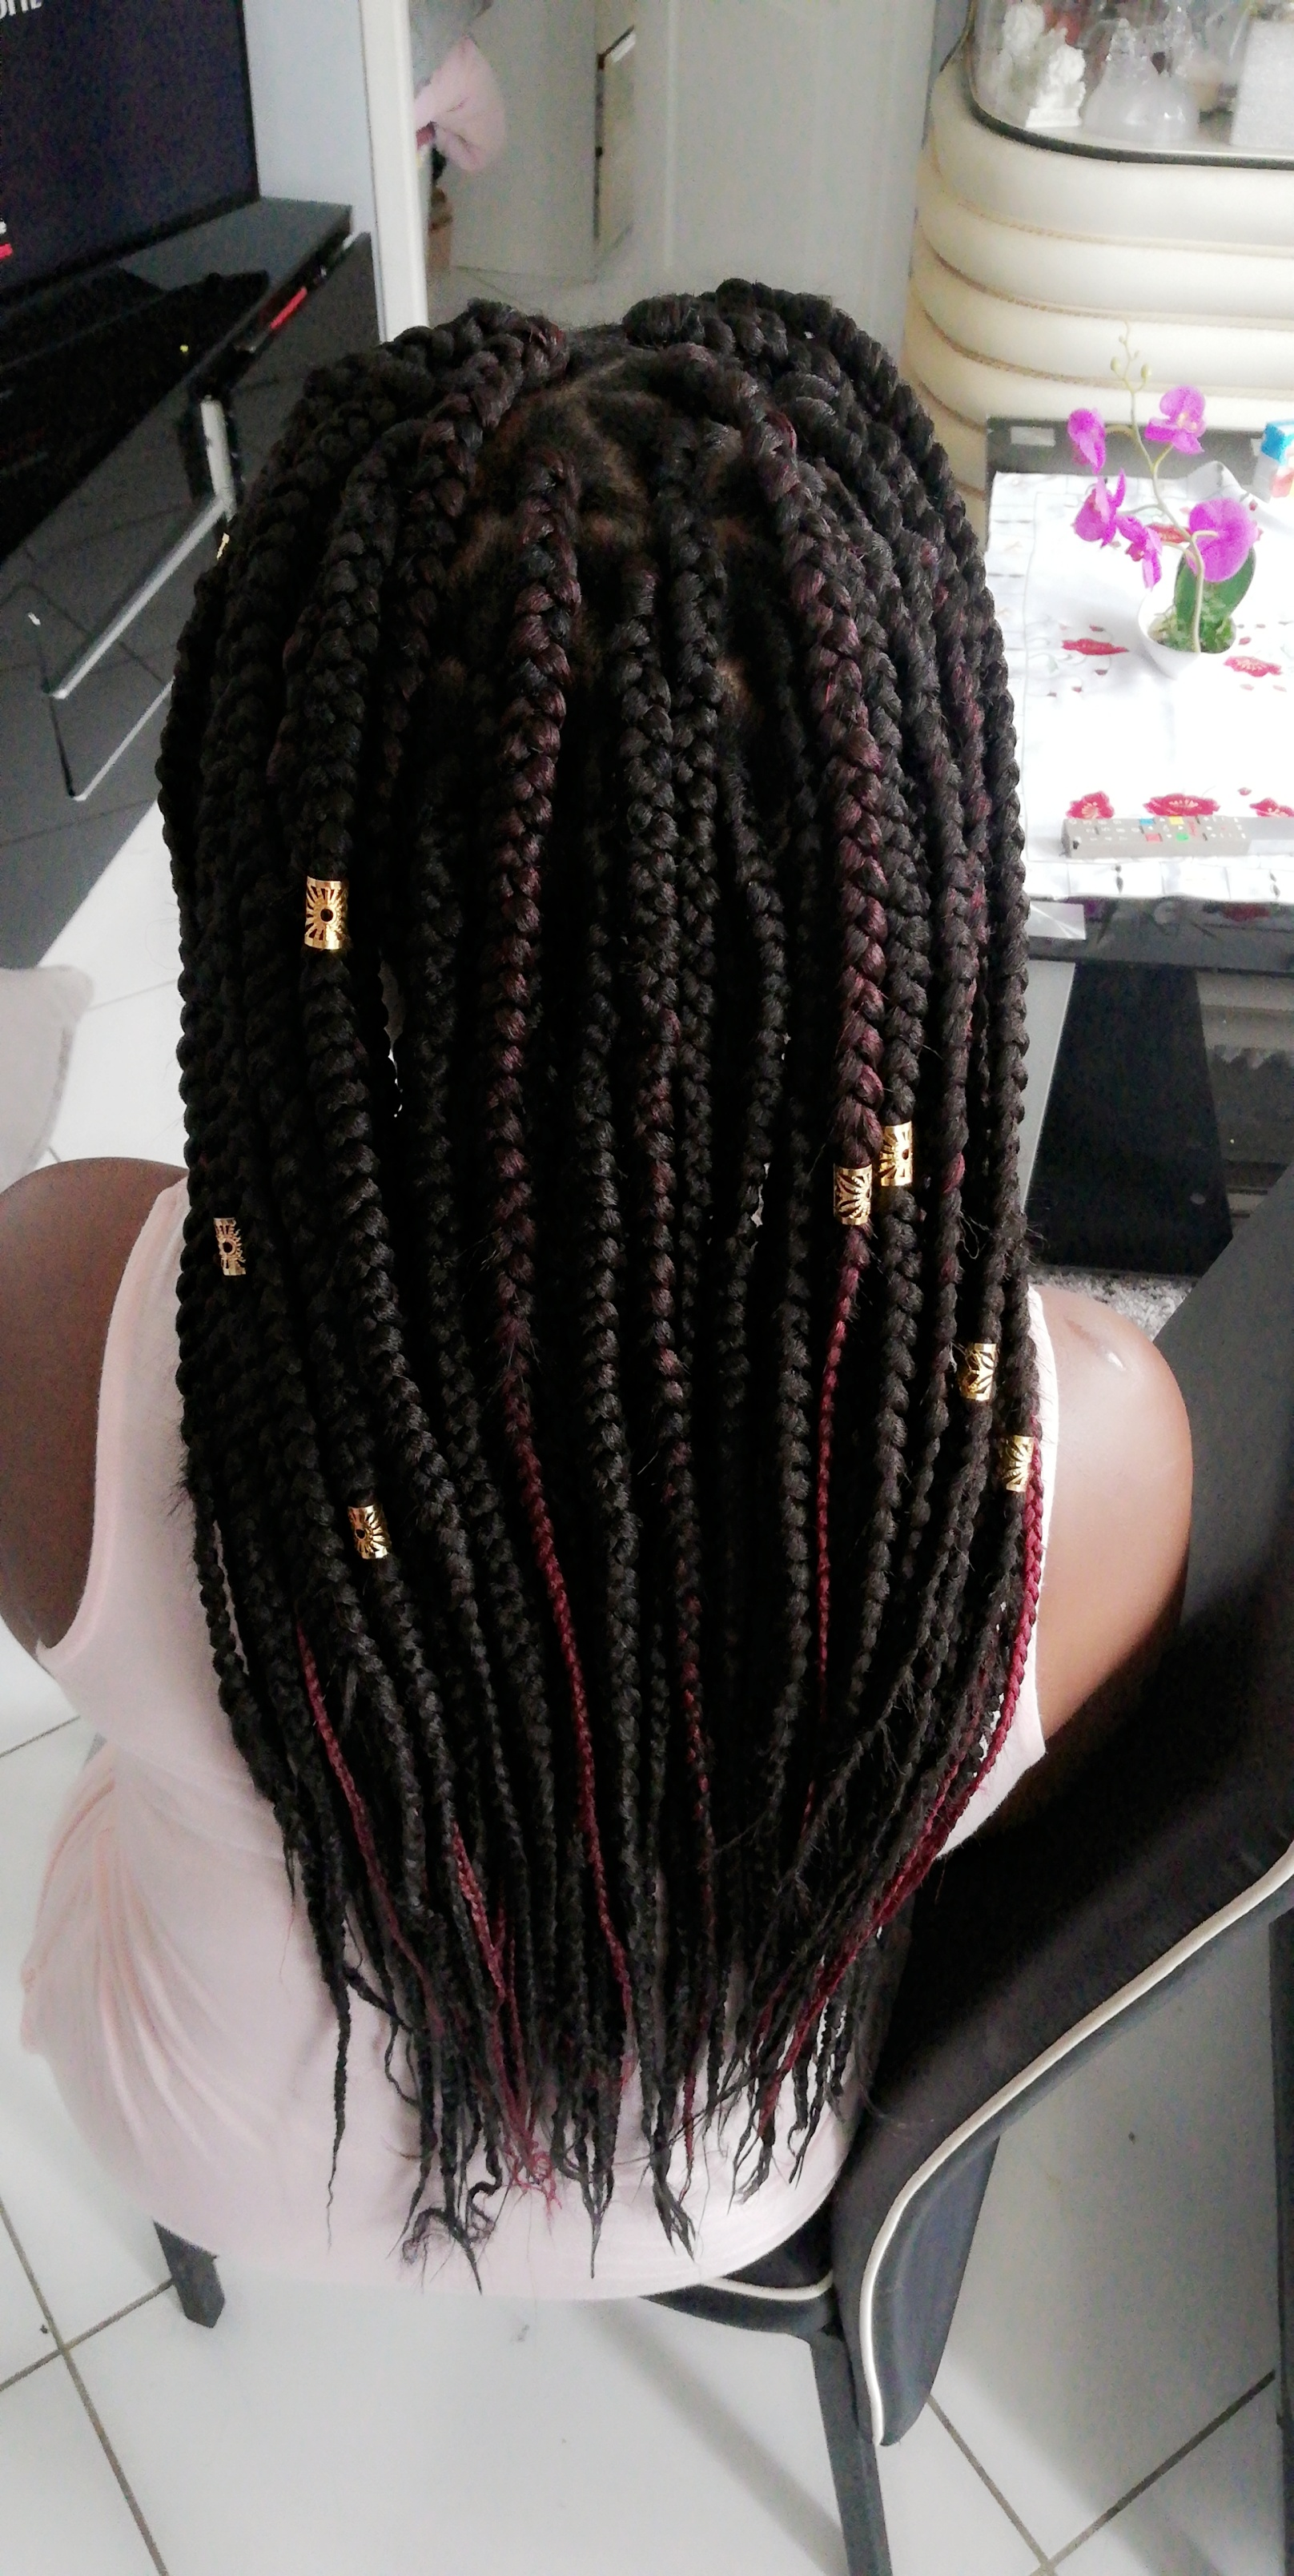 salon de coiffure afro tresse tresses box braids crochet braids vanilles tissages paris 75 77 78 91 92 93 94 95 CUYTJCZV